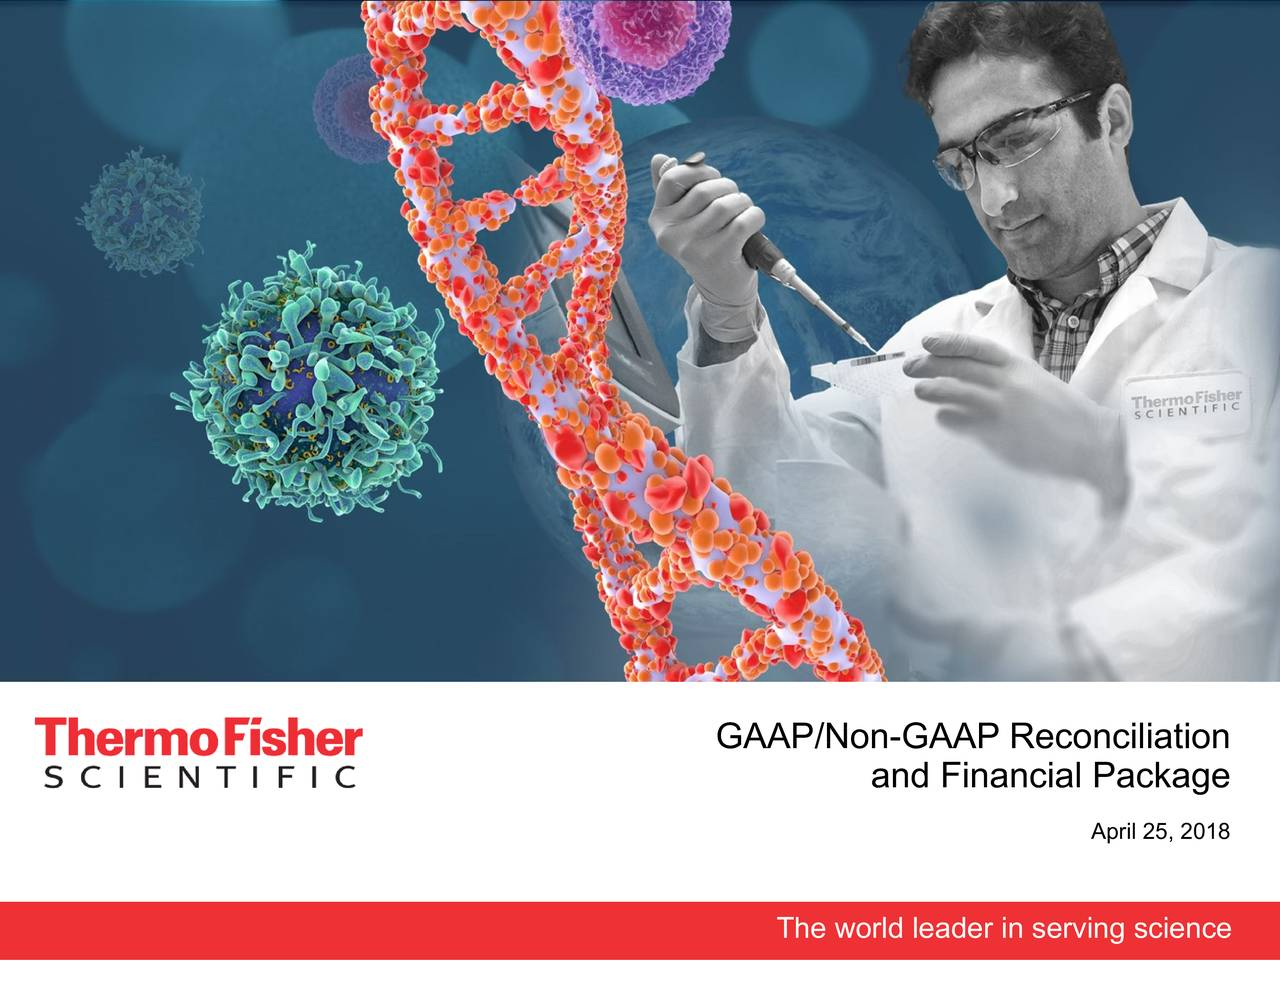 Earnings Disclaimer >> Thermo Fisher Scientific Inc. 2018 Q1 - Results - Earnings Call Slides - Thermo Fisher ...